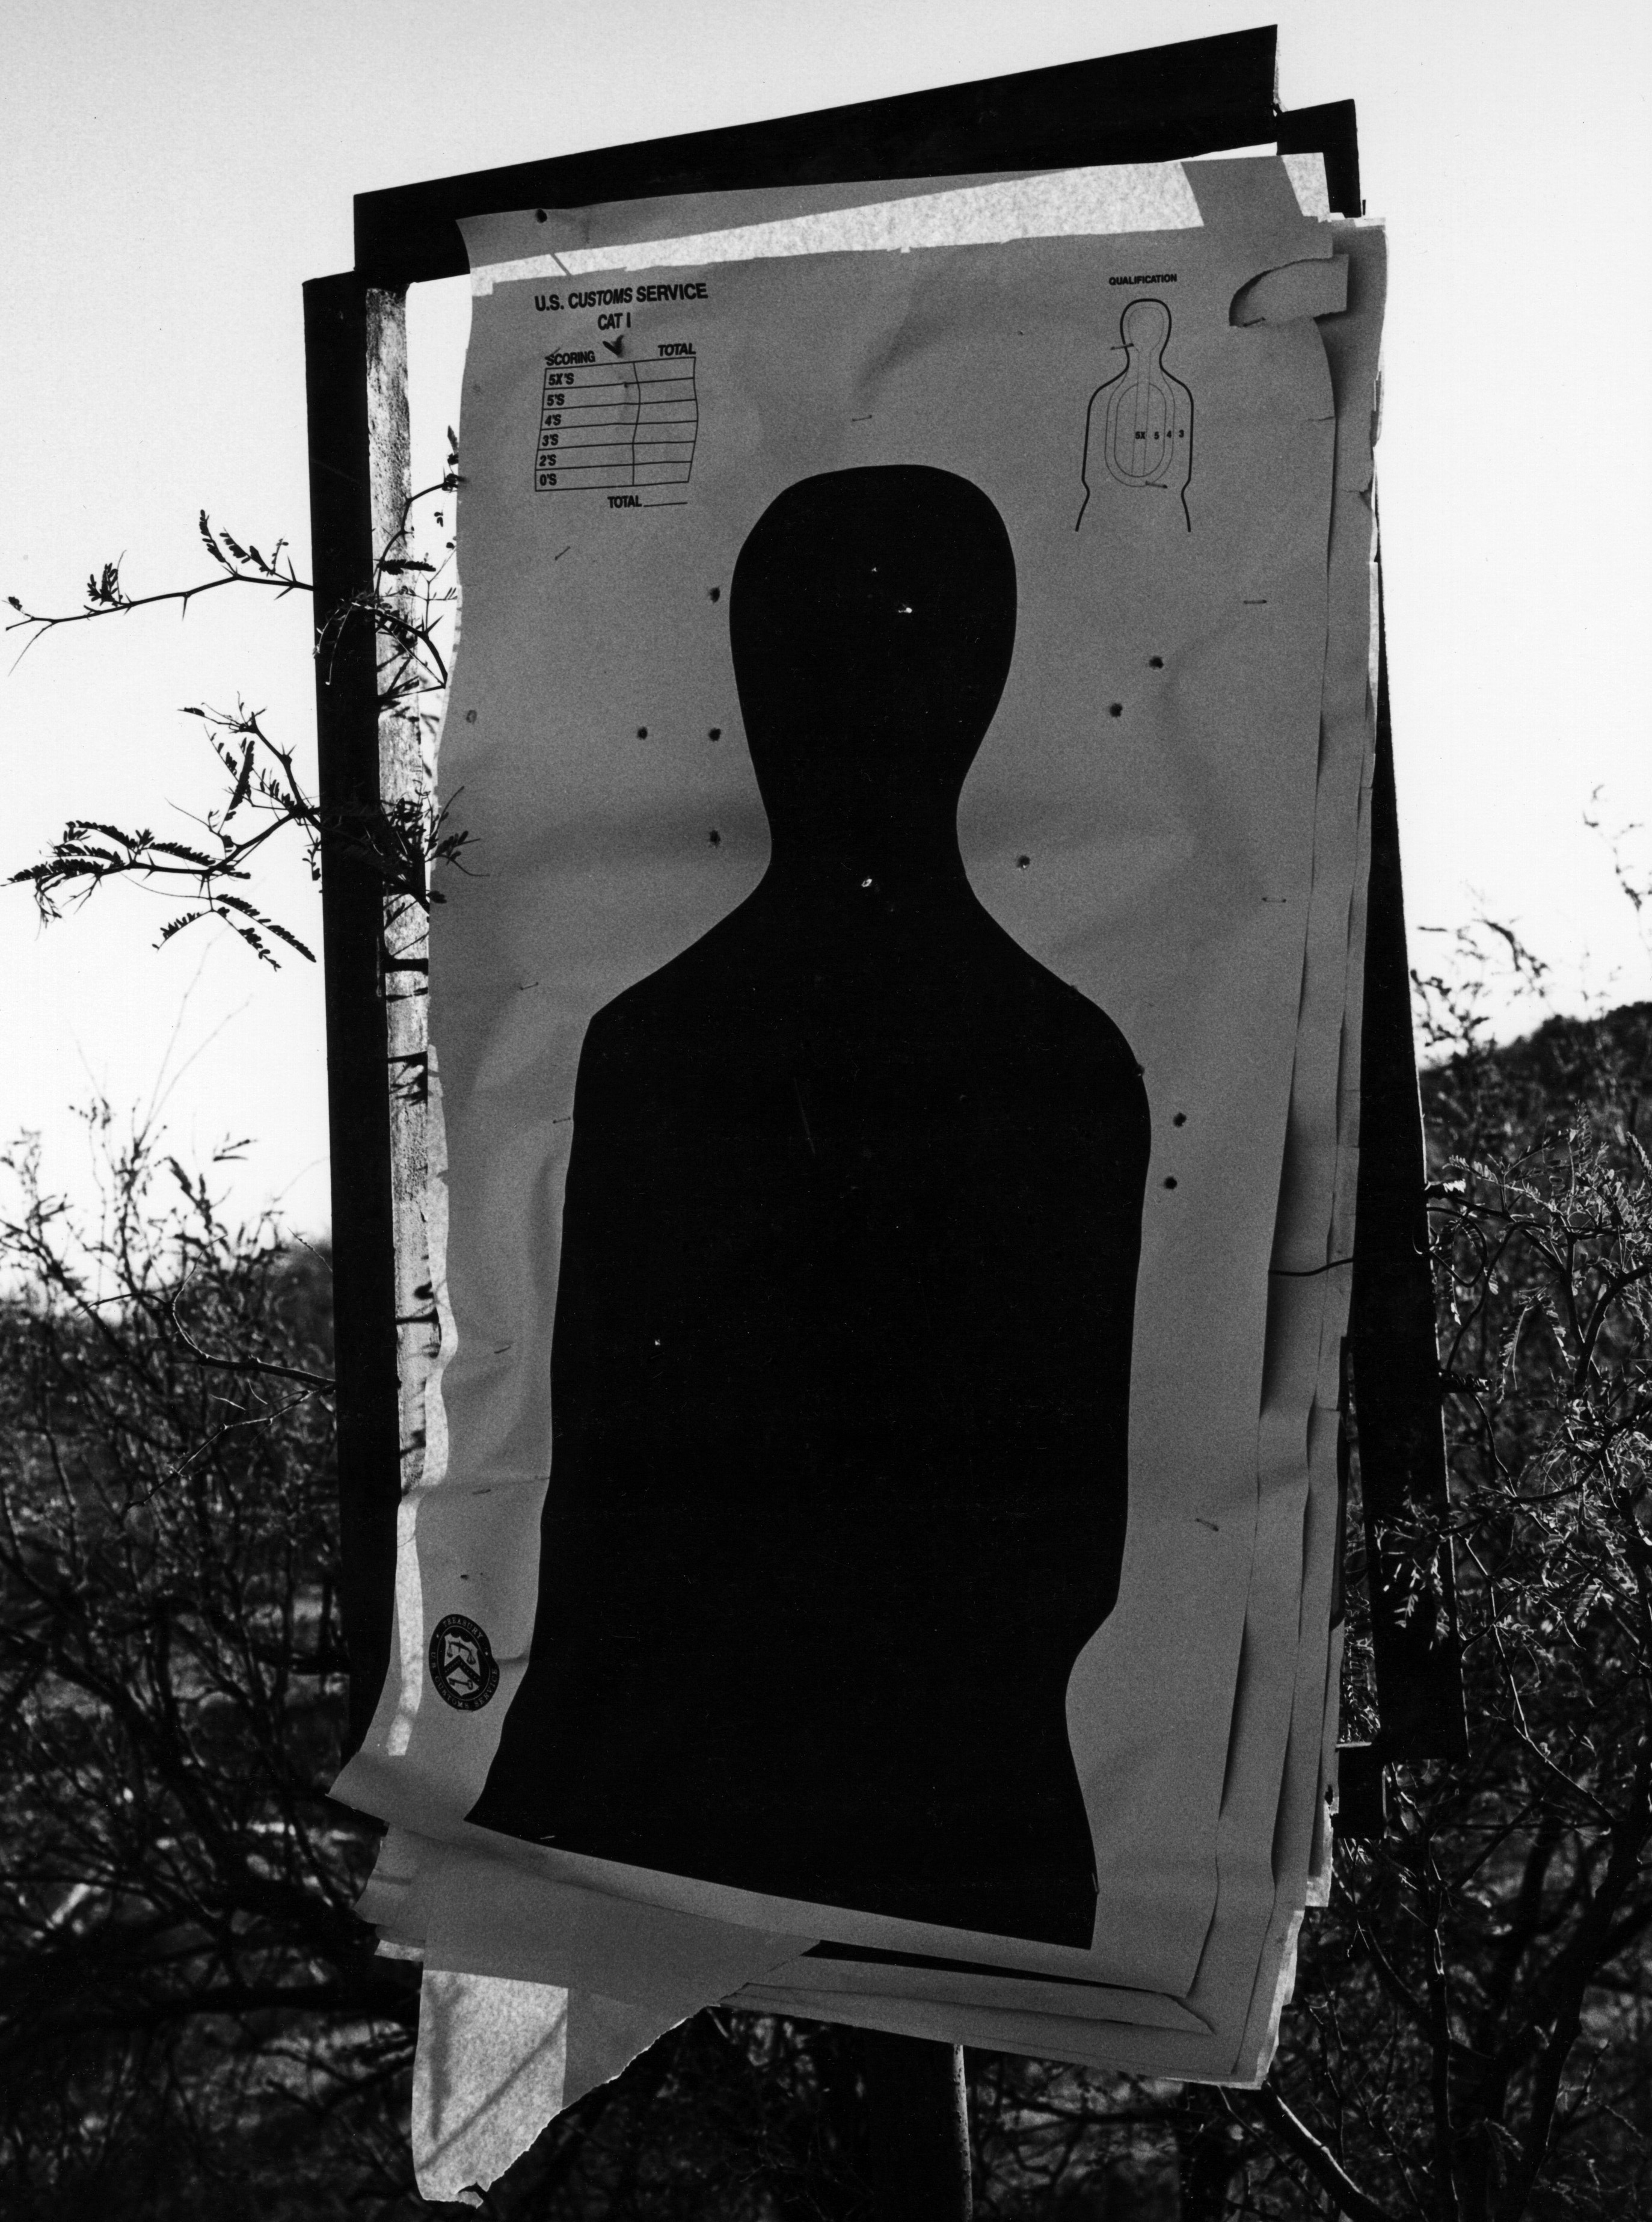 The silhouette of a person on a target with bullet holes